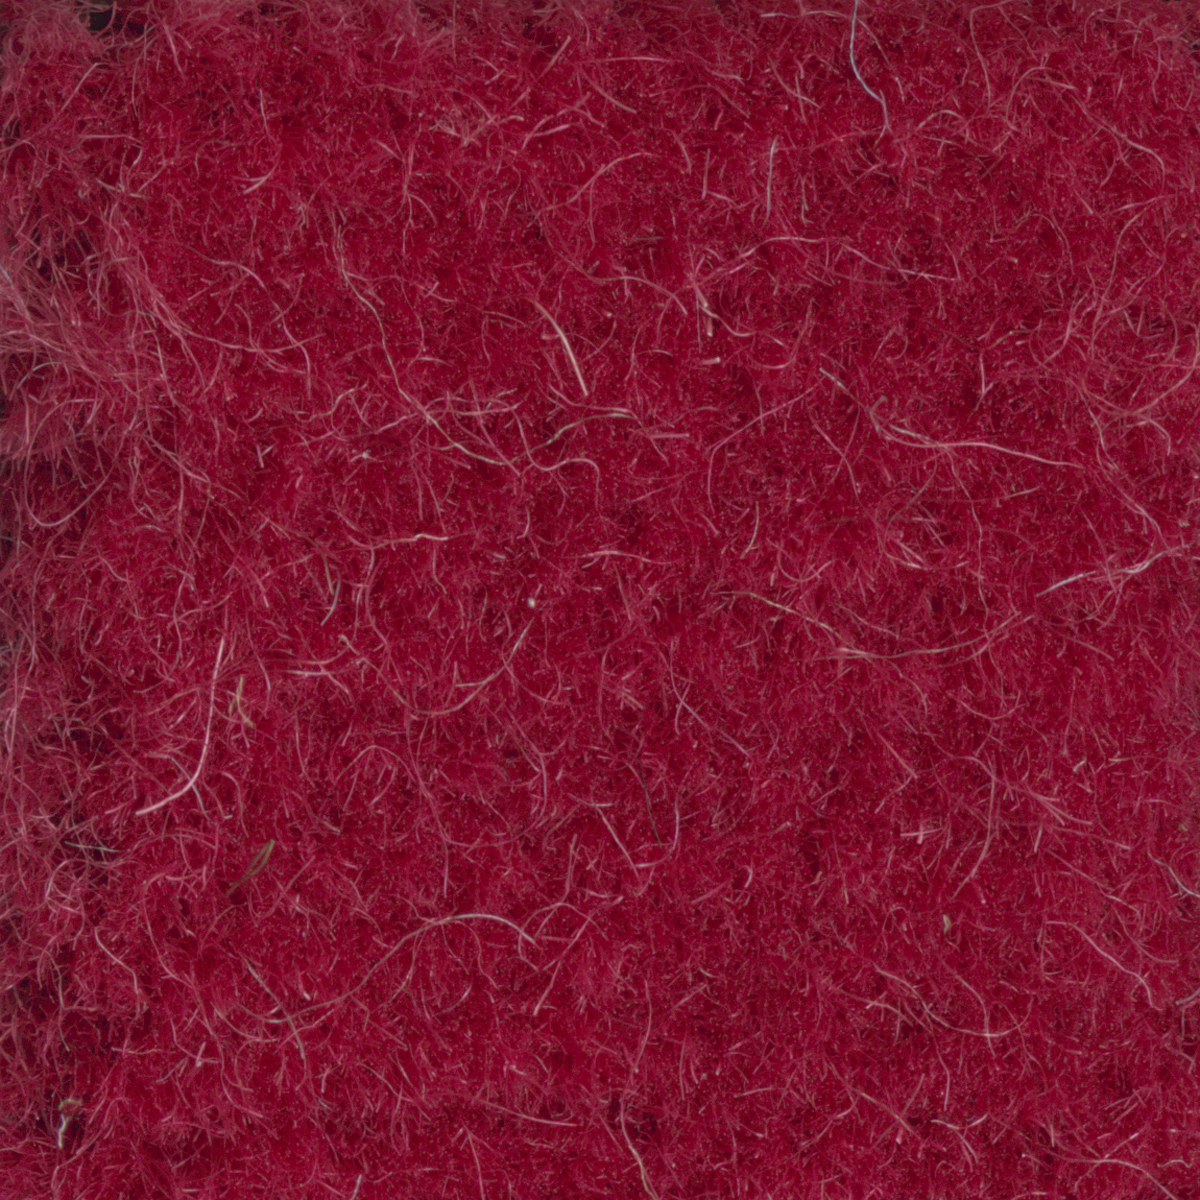 CLARET ENGLISH WILTON II WOOL CARPET